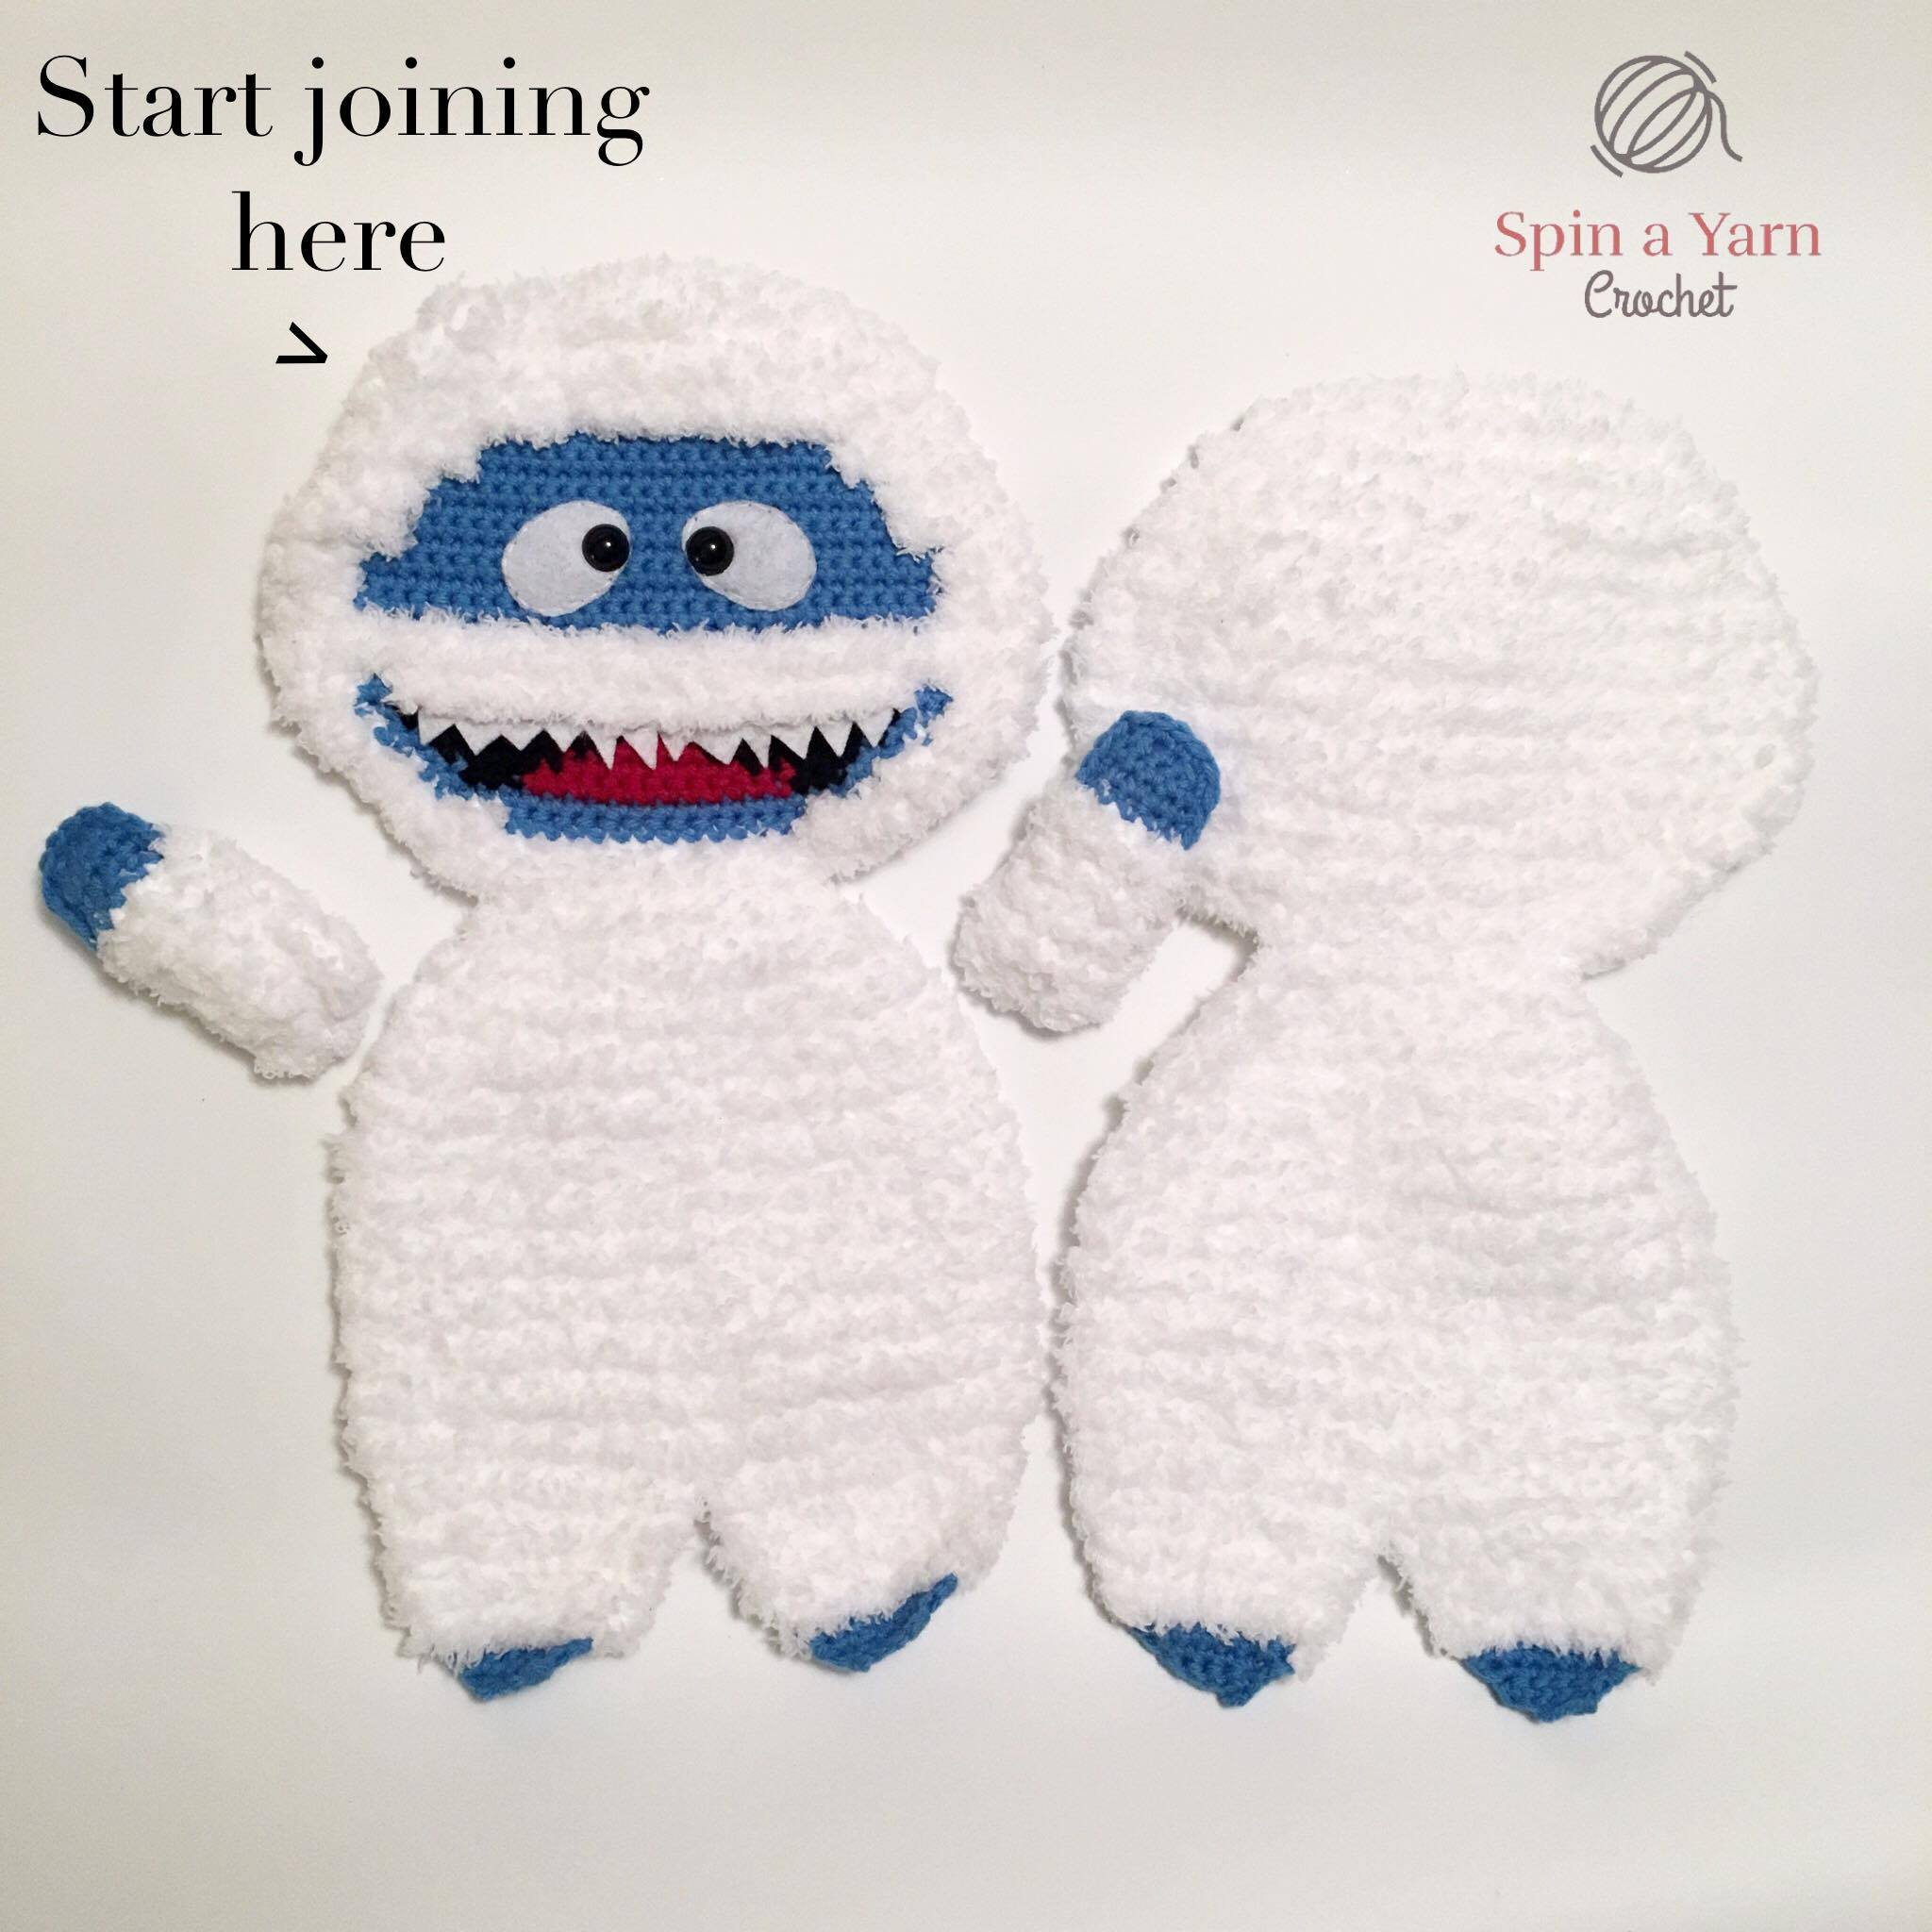 0e1779a7e2558 Bumble the Abominable Snowman Free Crochet Pattern • Spin a Yarn Crochet